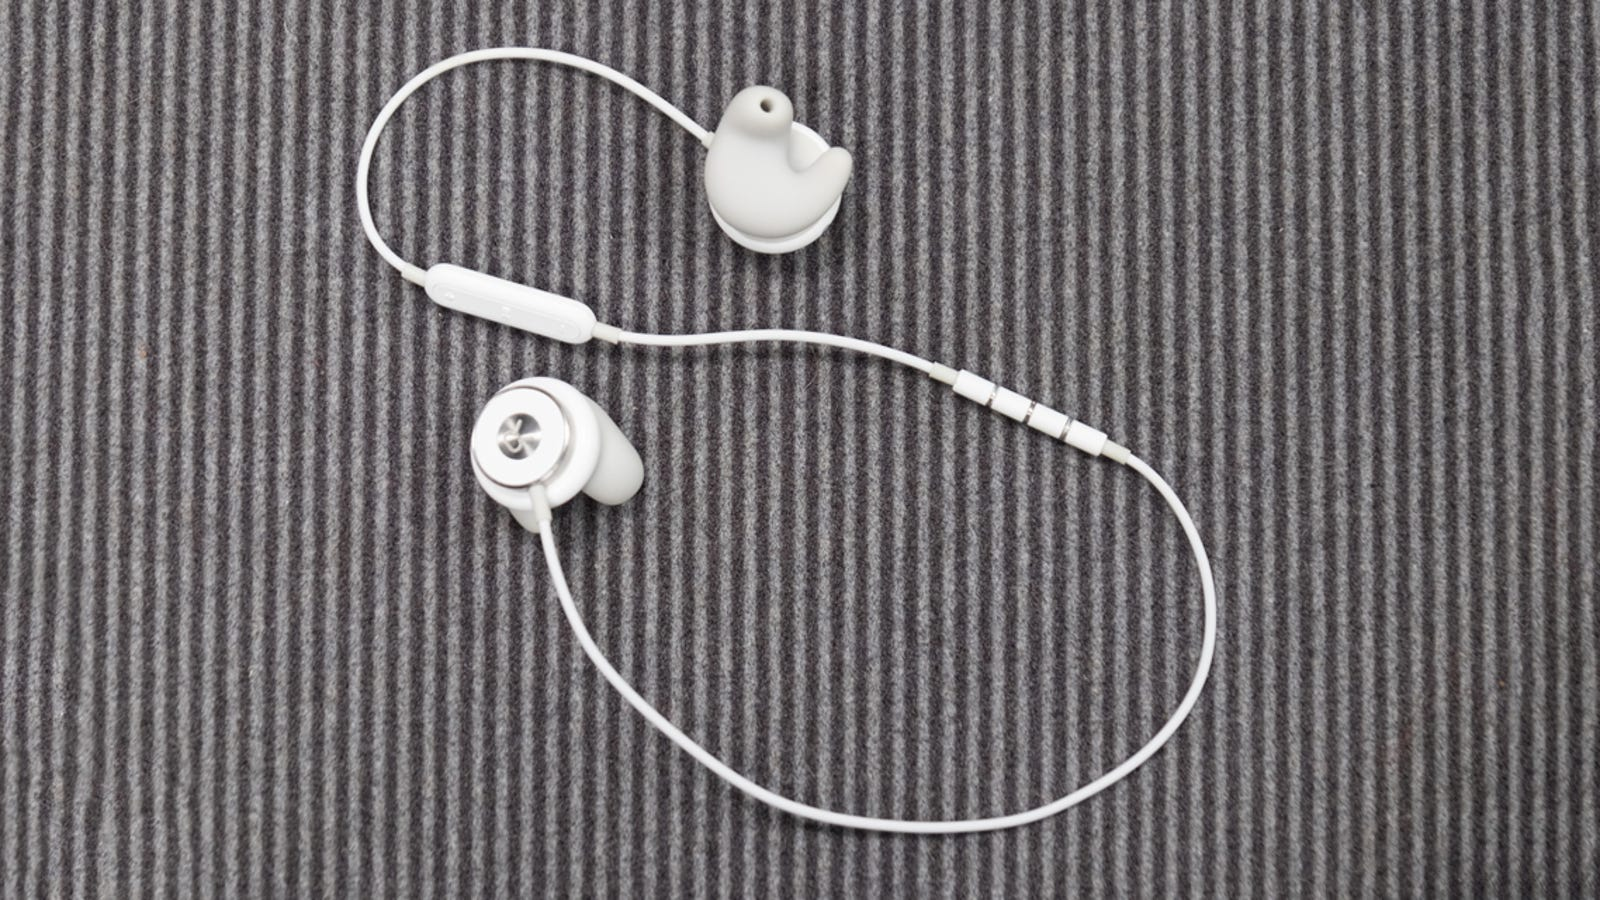 earbuds around ear